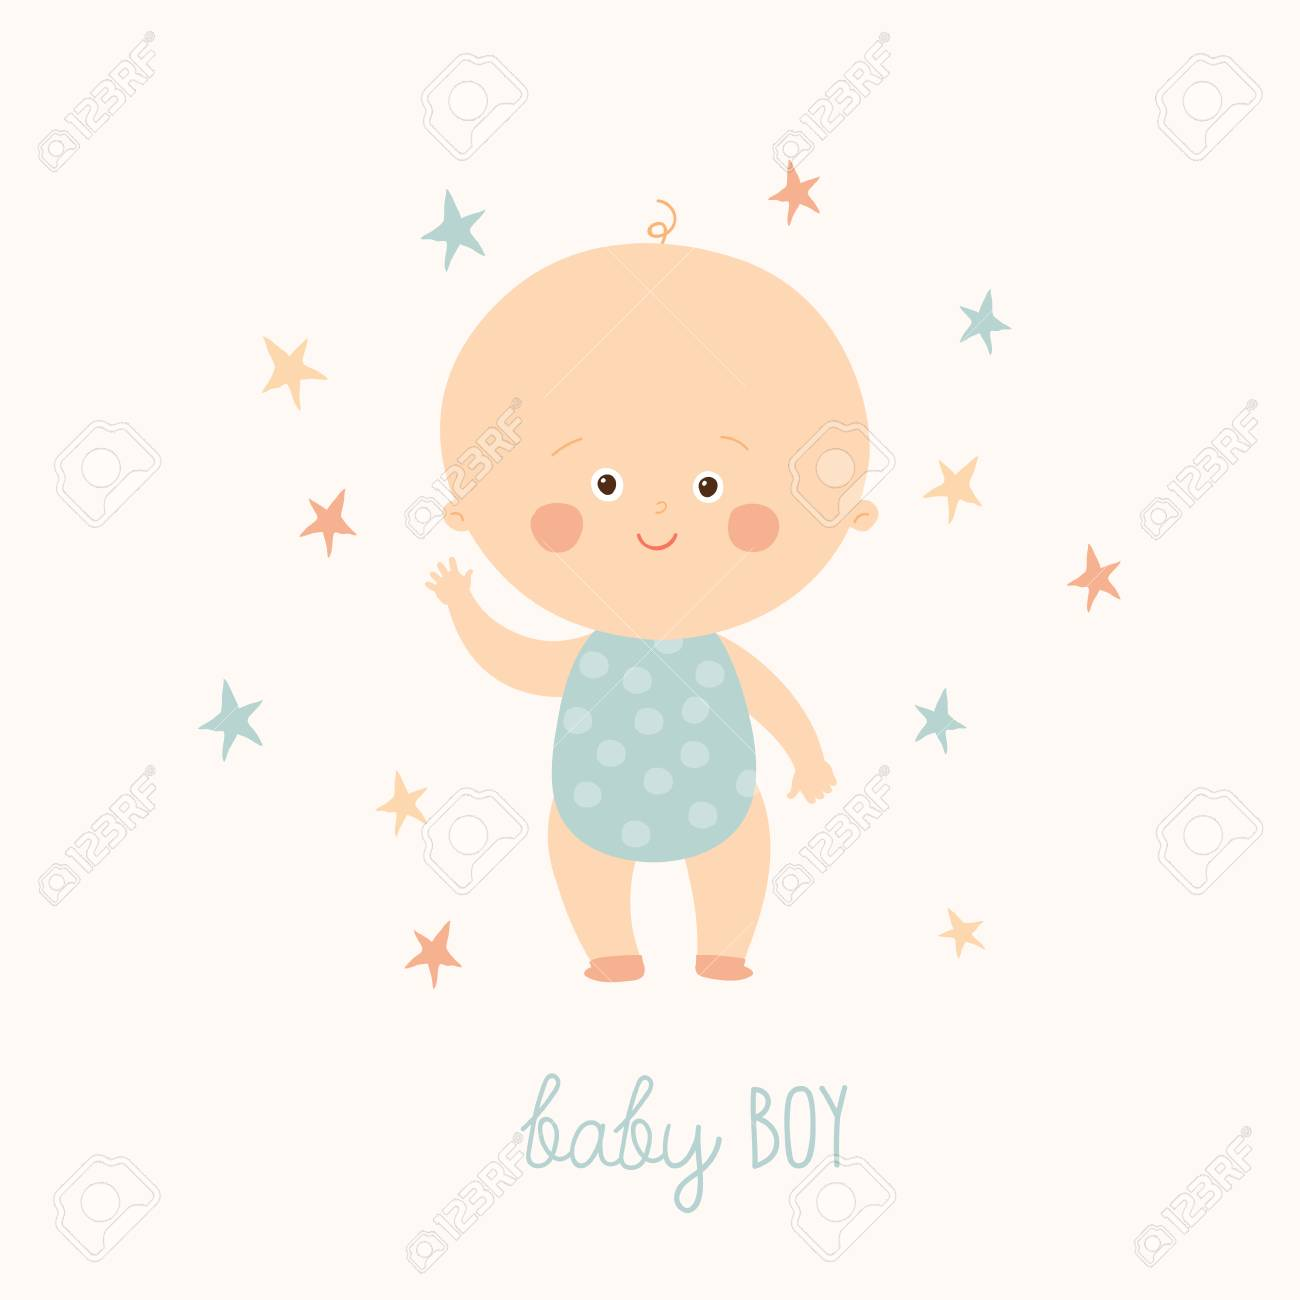 Baby Shower Card For Baby Boy Cute Baby Boy Standing Blond